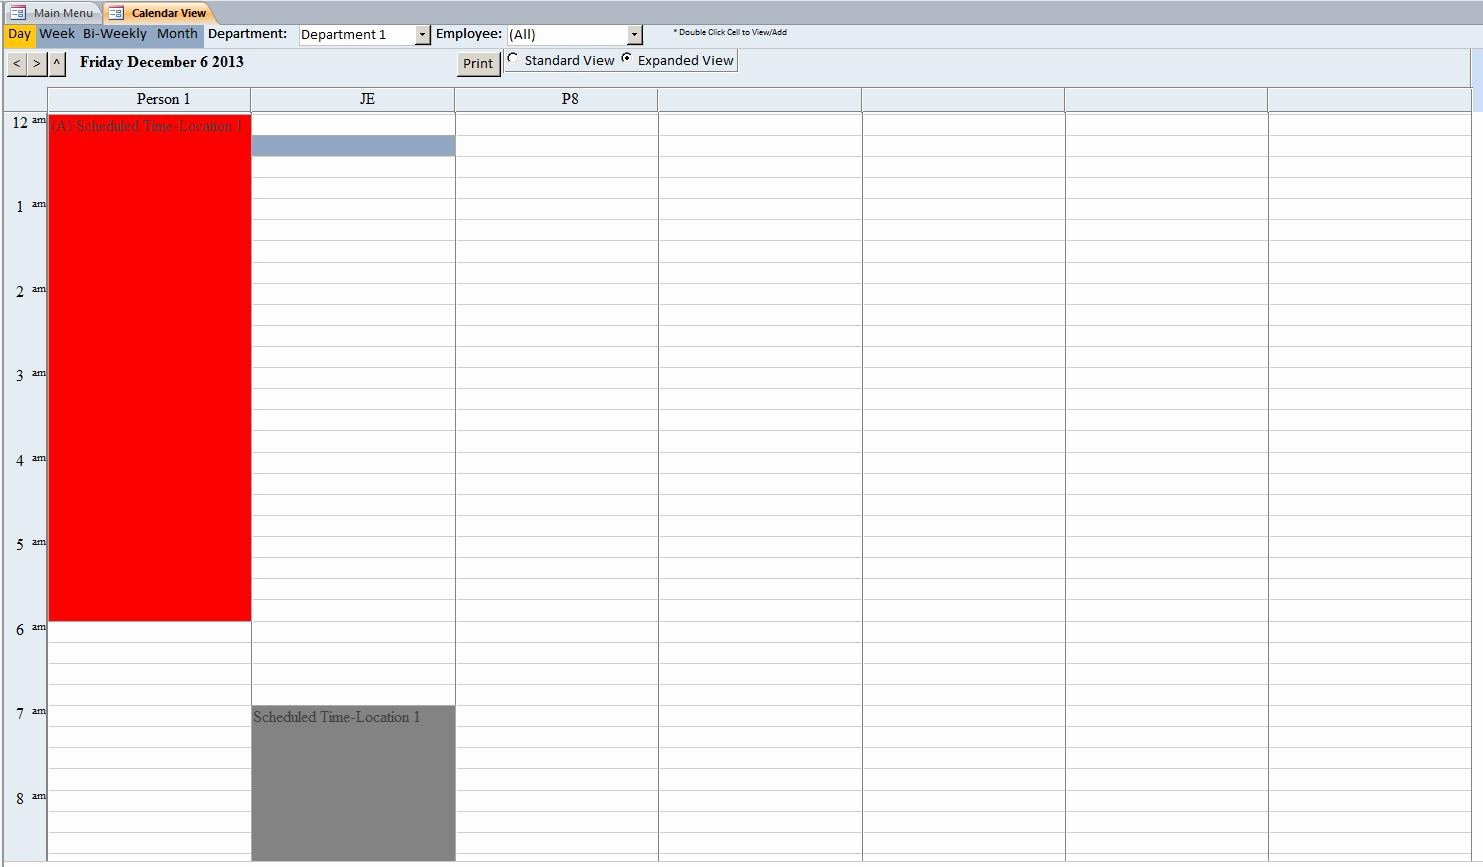 Microsoft Access Scheduling Template Best Of Microsoft Access Employee Scheduling Database Template